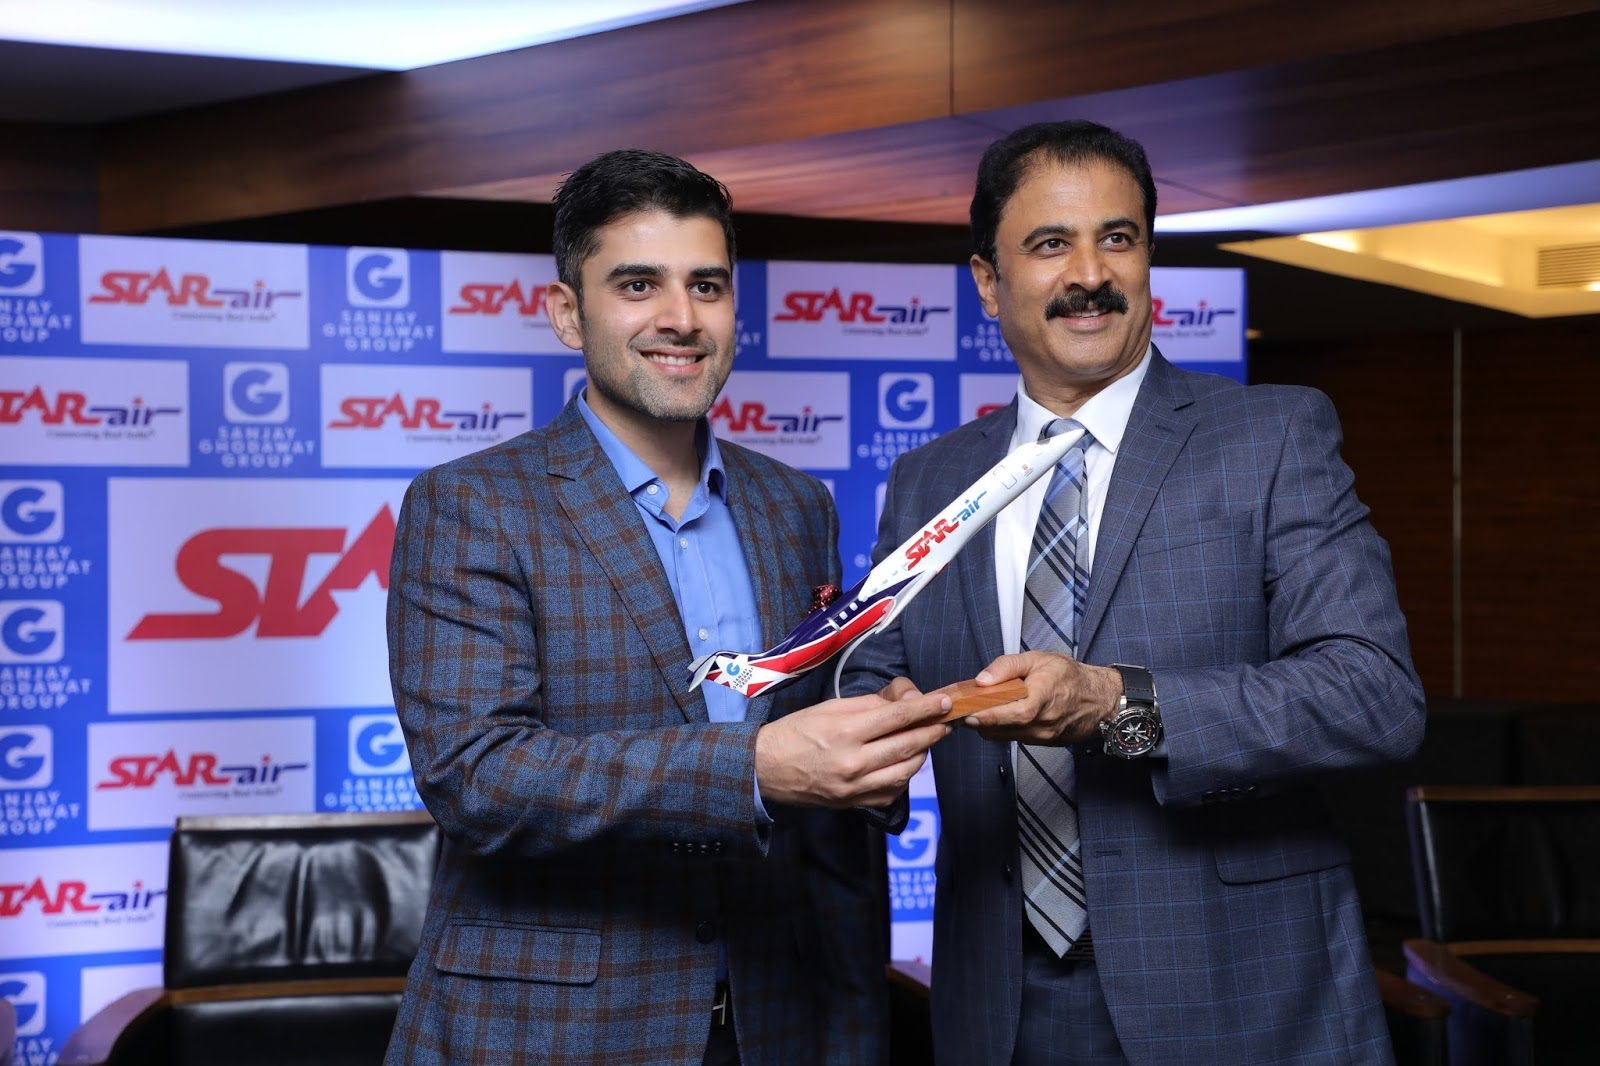 Star Air, a Part of Sanjay Ghodawat Group is Ready to Fly